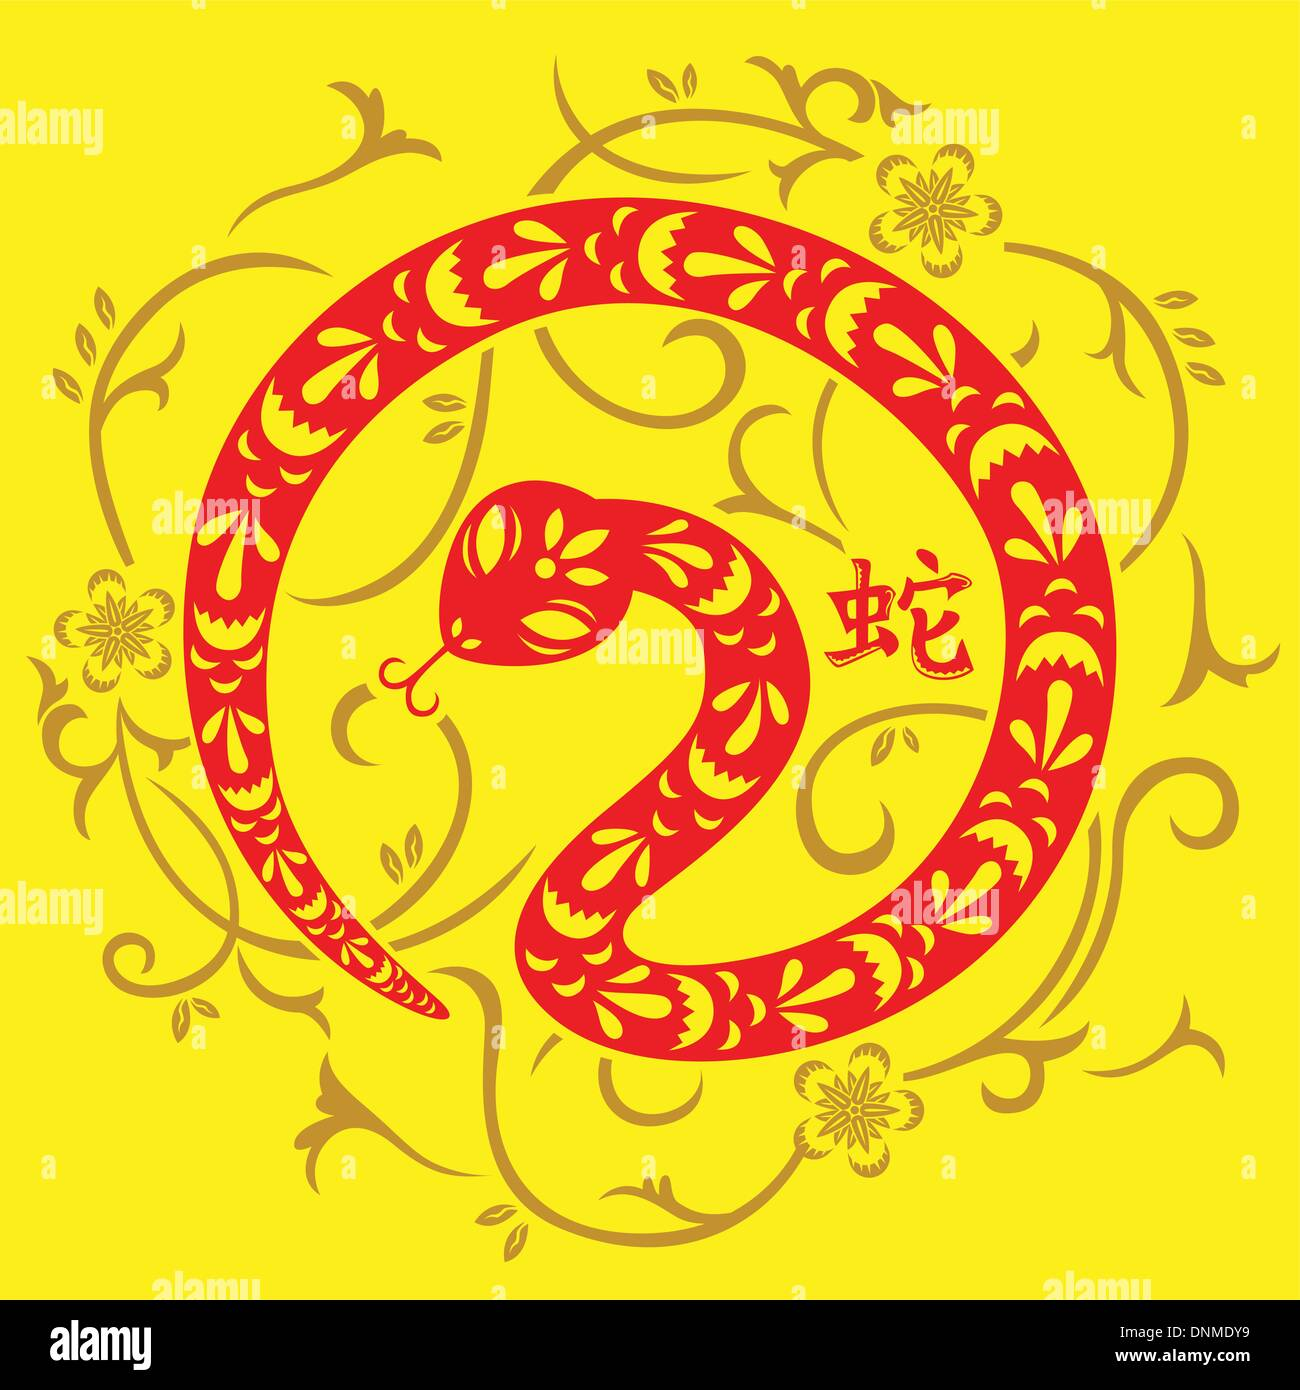 A vector illustration of Year of Snake design for Chinese New Year celebration - Stock Image